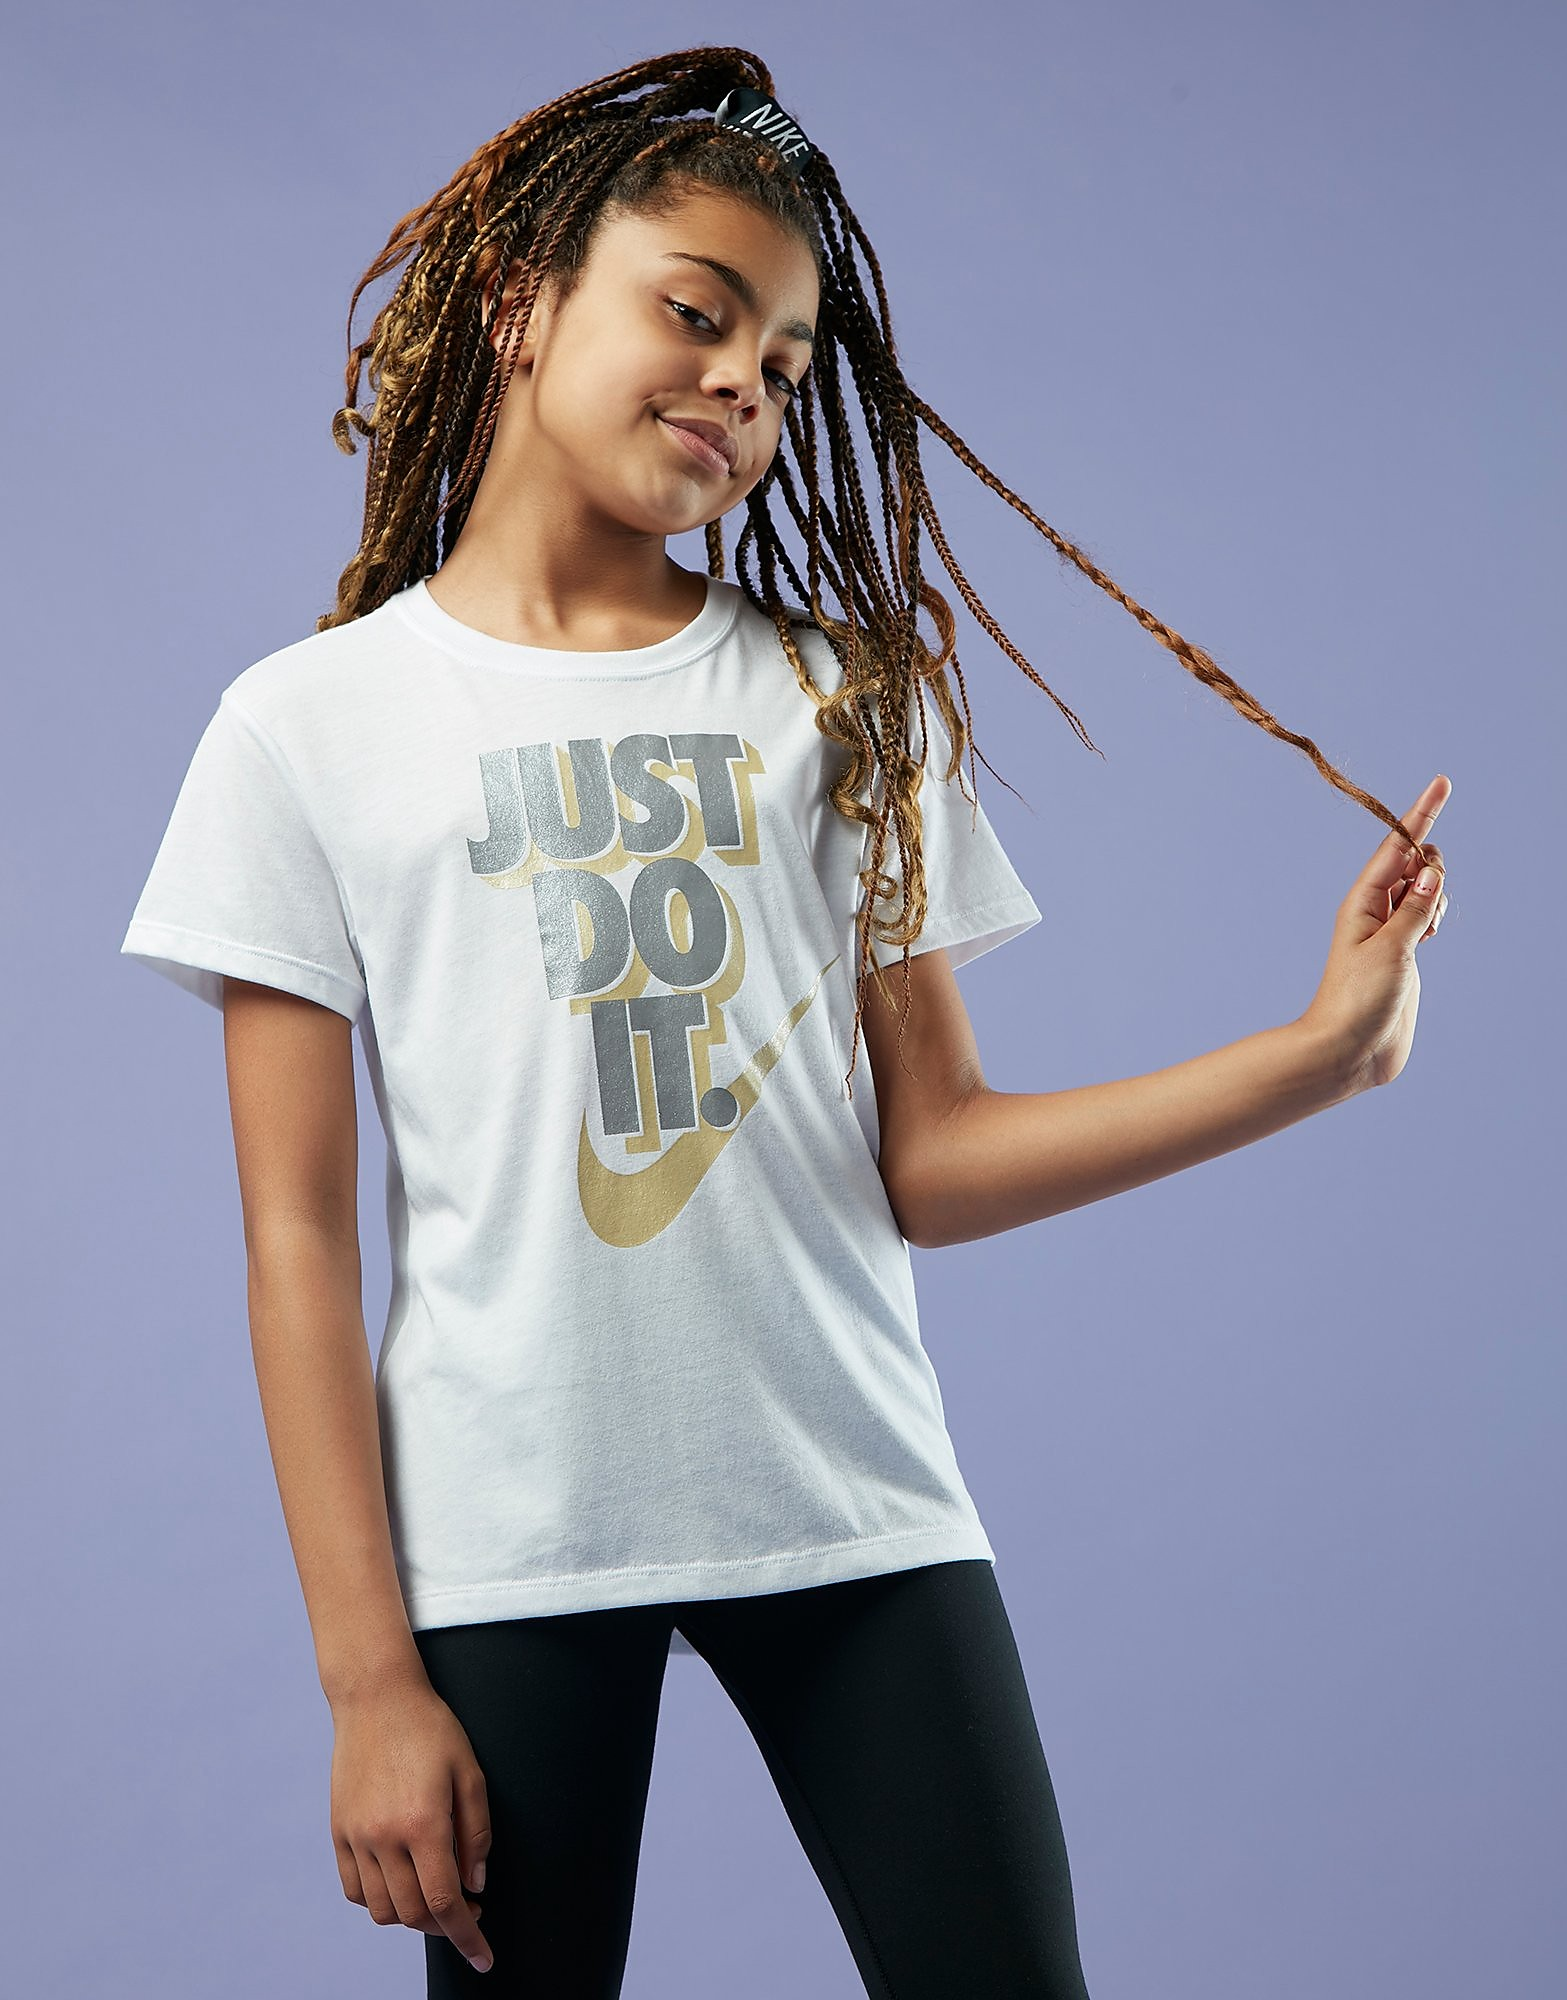 Nike Girls' Stack Just Do It